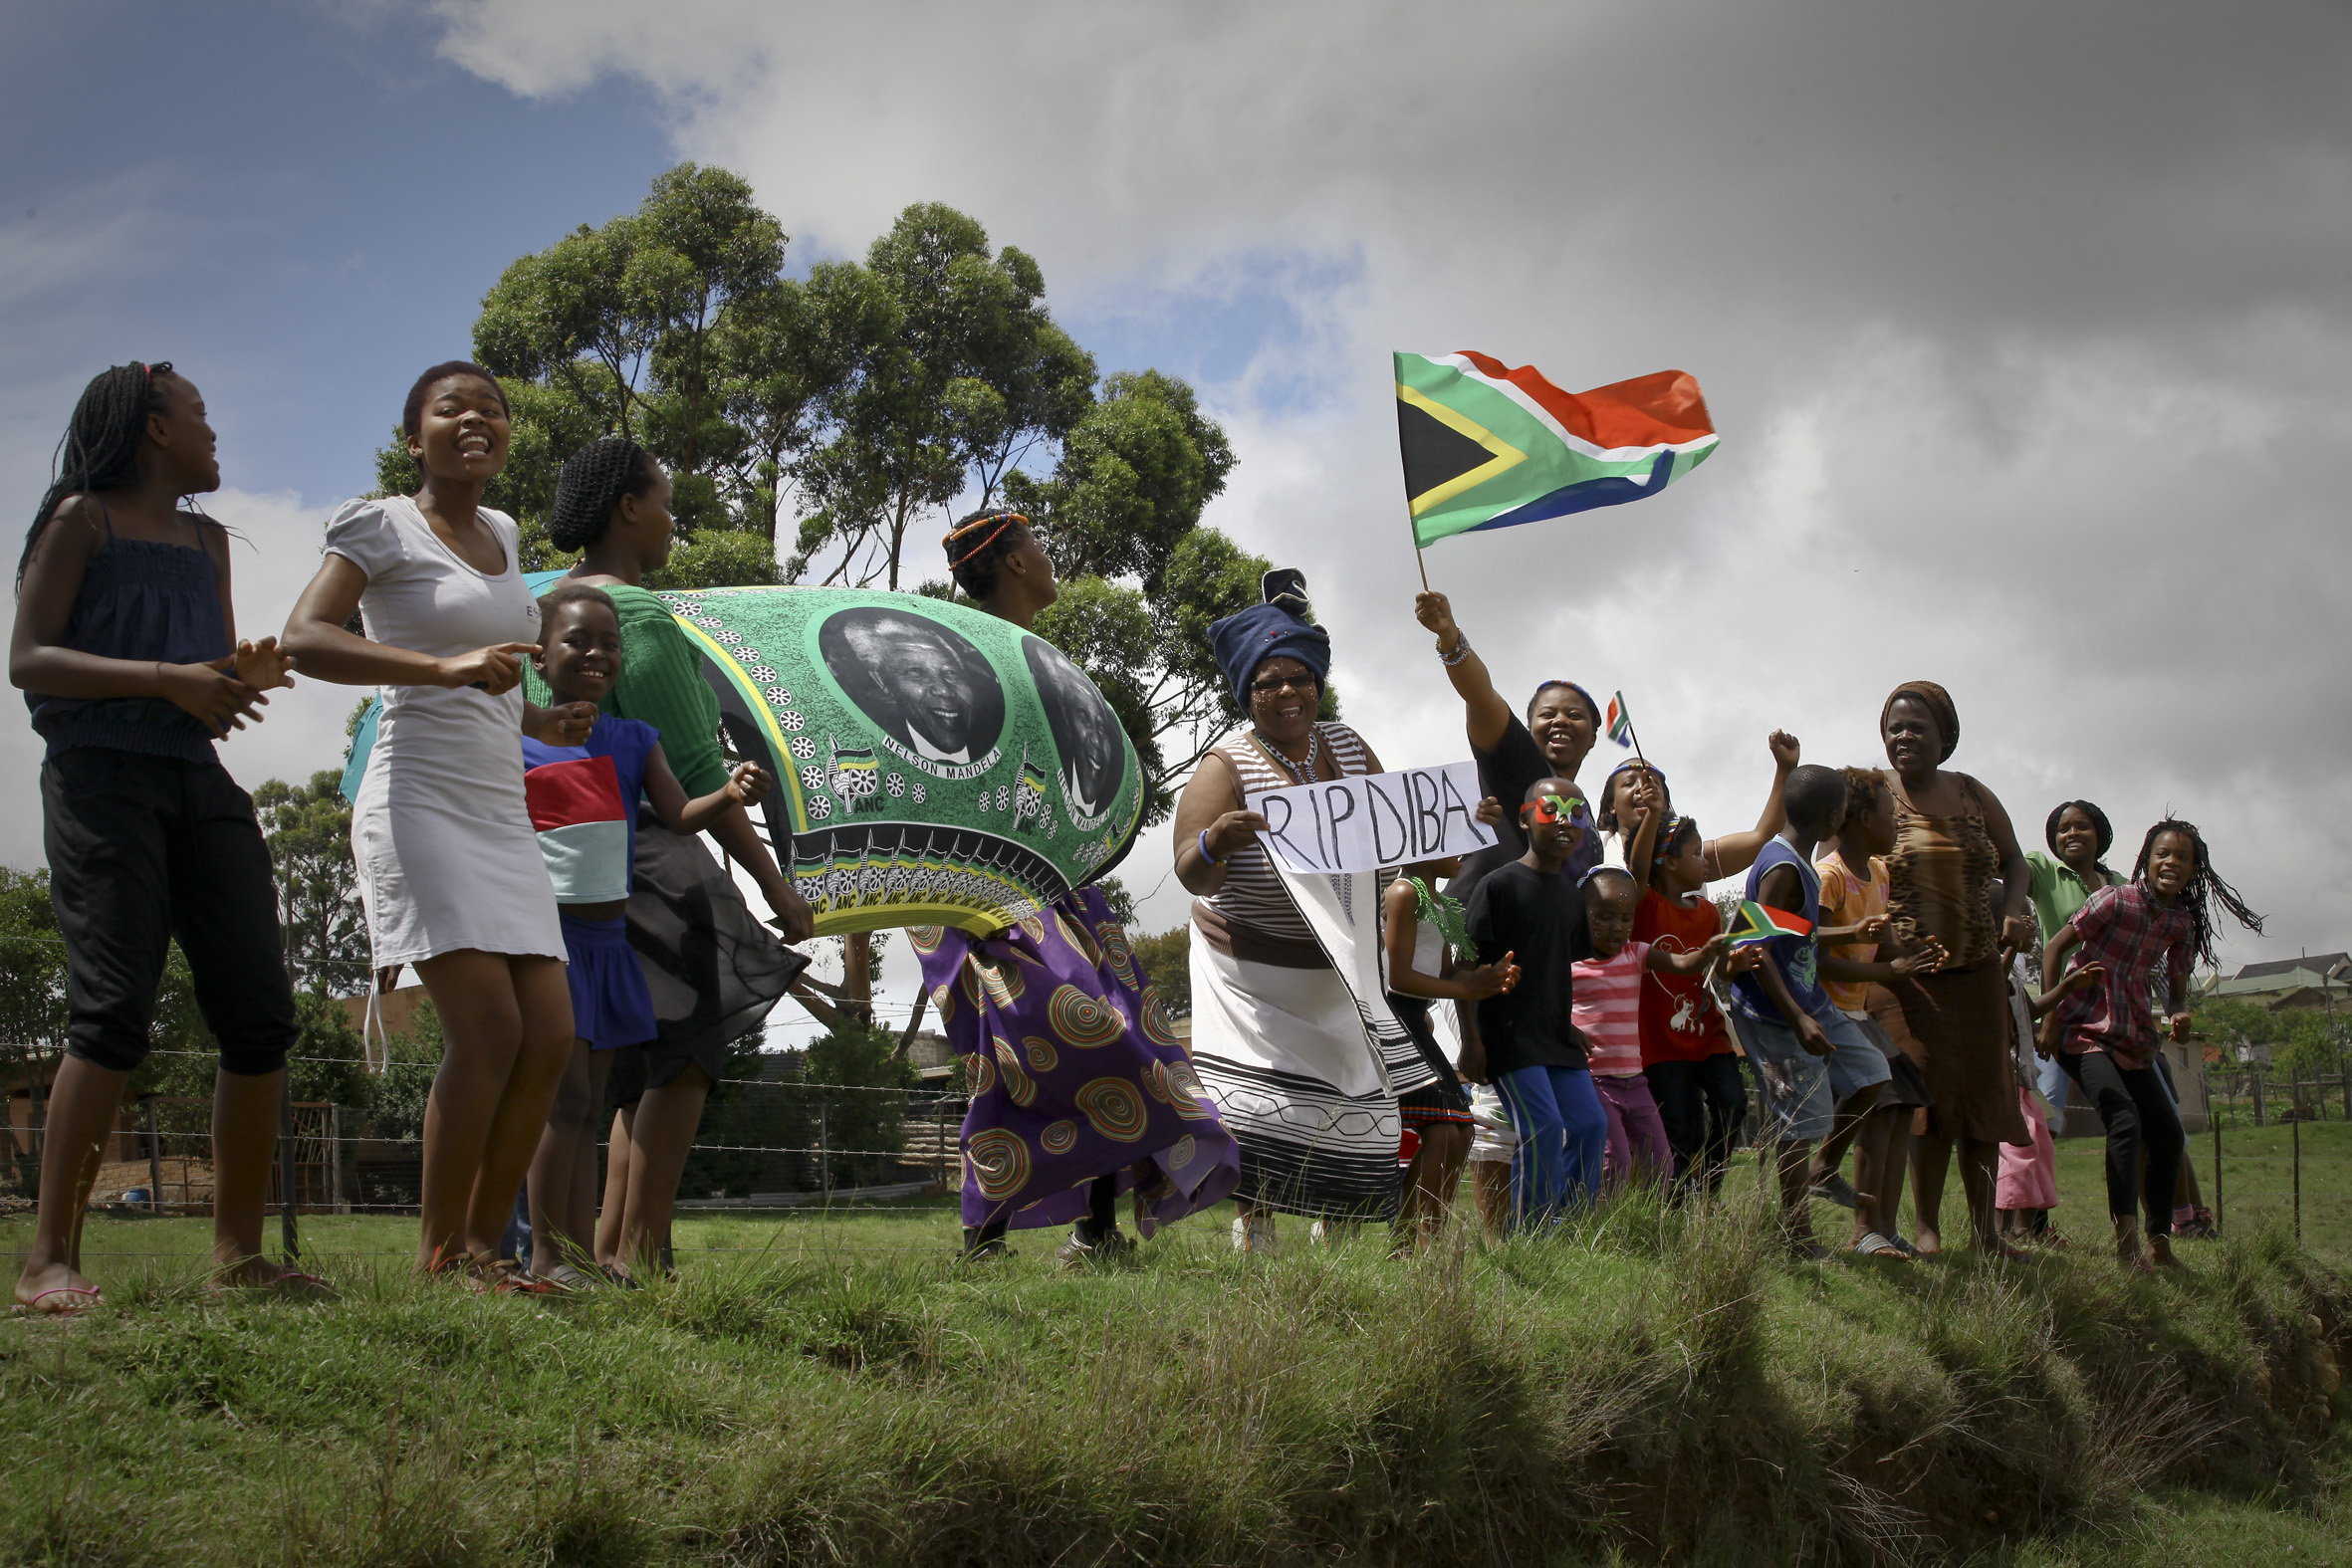 A journalist's account of the Mandela funeral